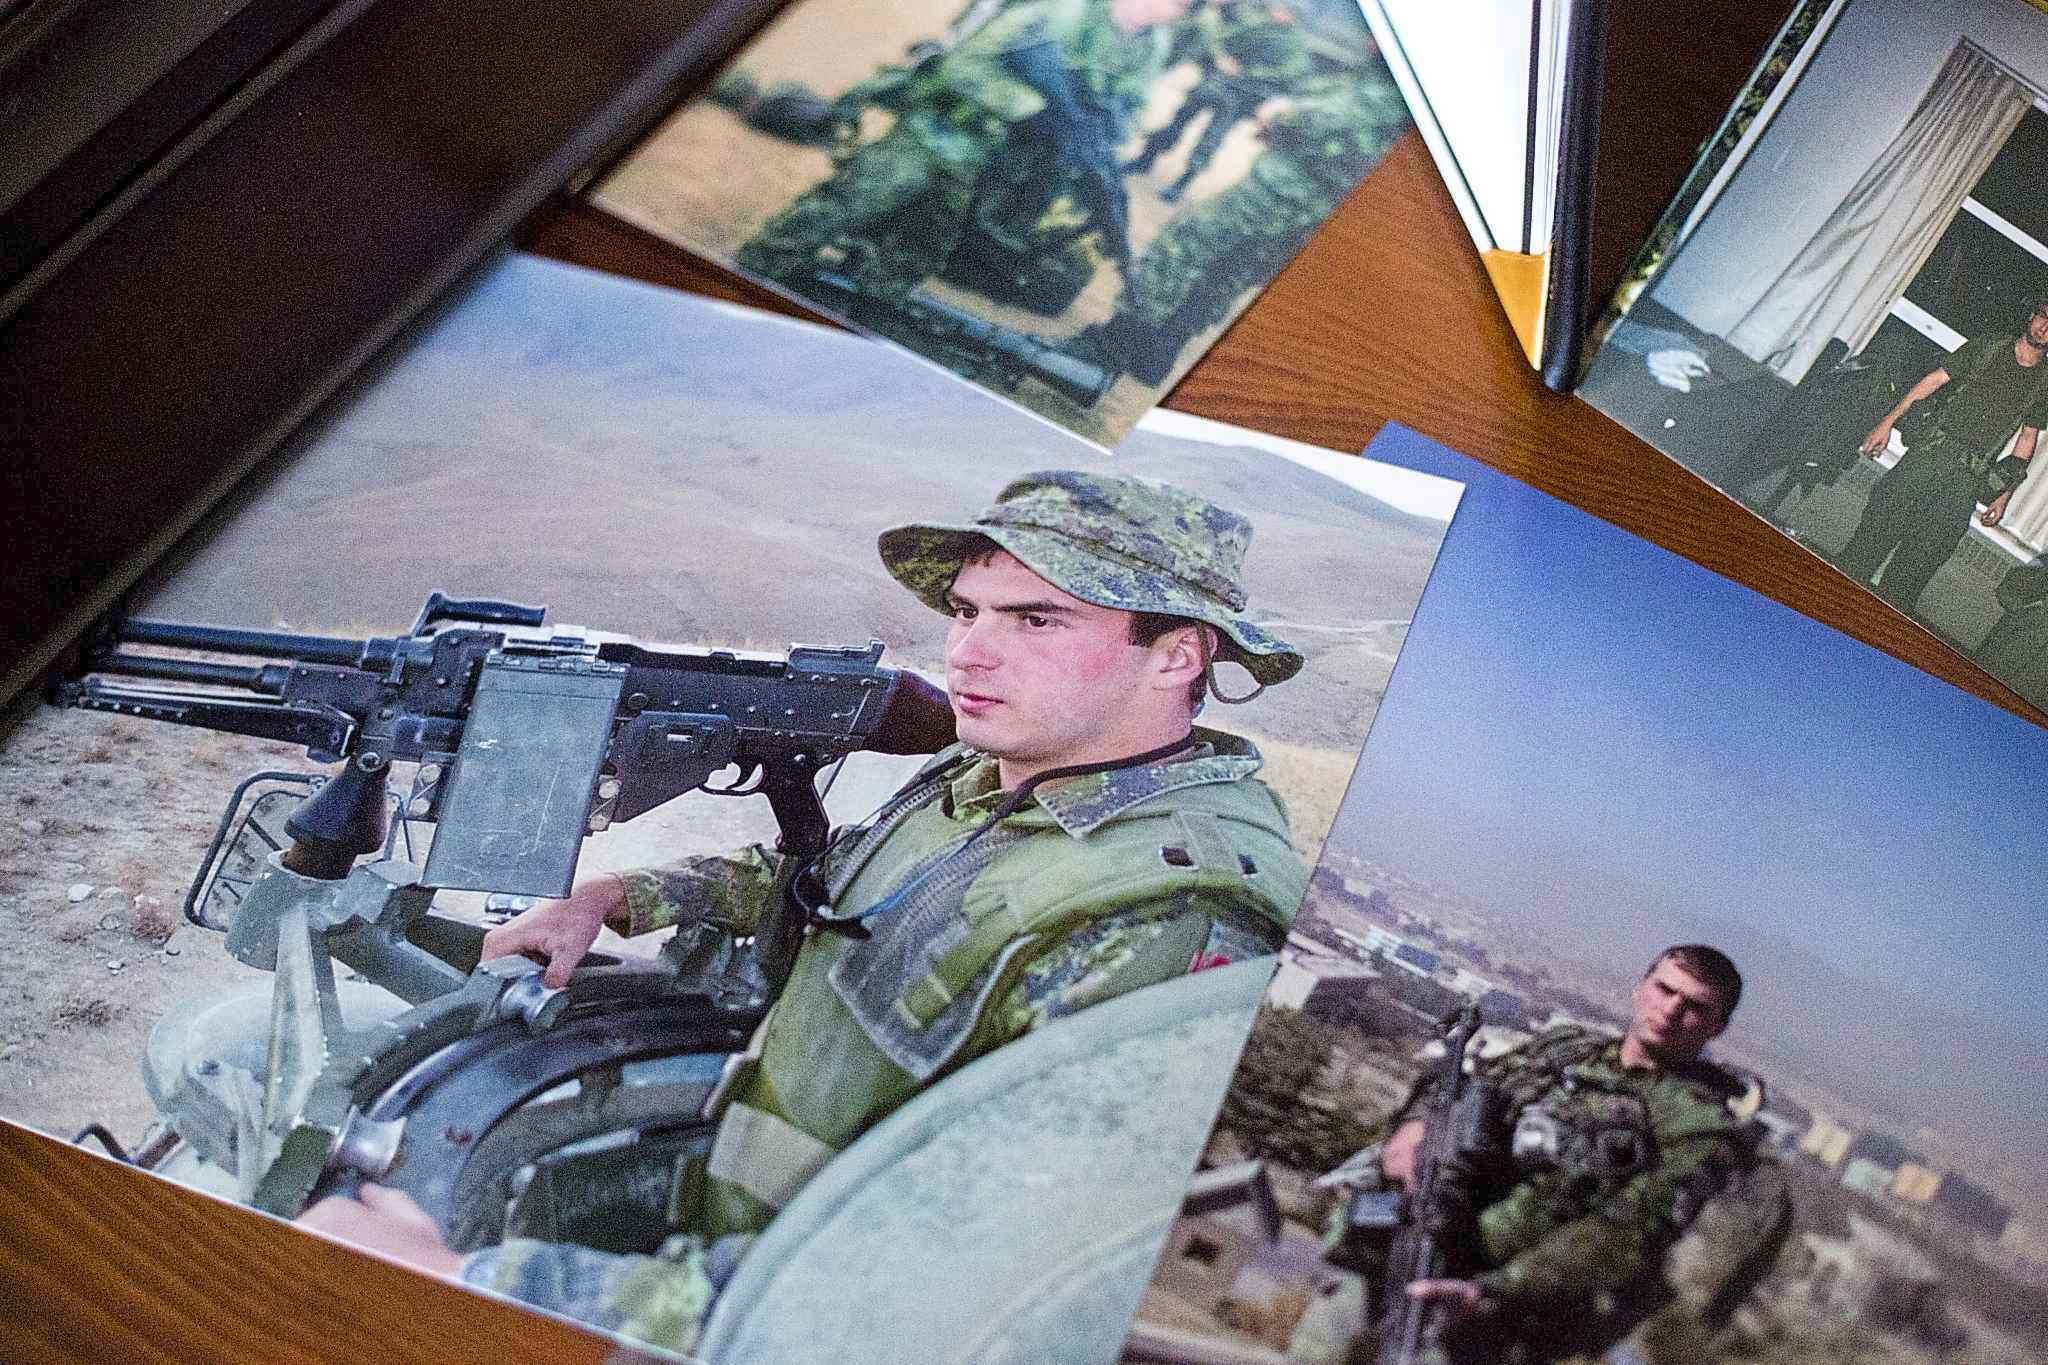 Anita Cenerini's son, Afghanistan veteran Pte. Thomas Welch, died by suicide at the age of 22 after returning from the war. (Mikaela MacKenzie / Winnipeg Free Press files)</p>